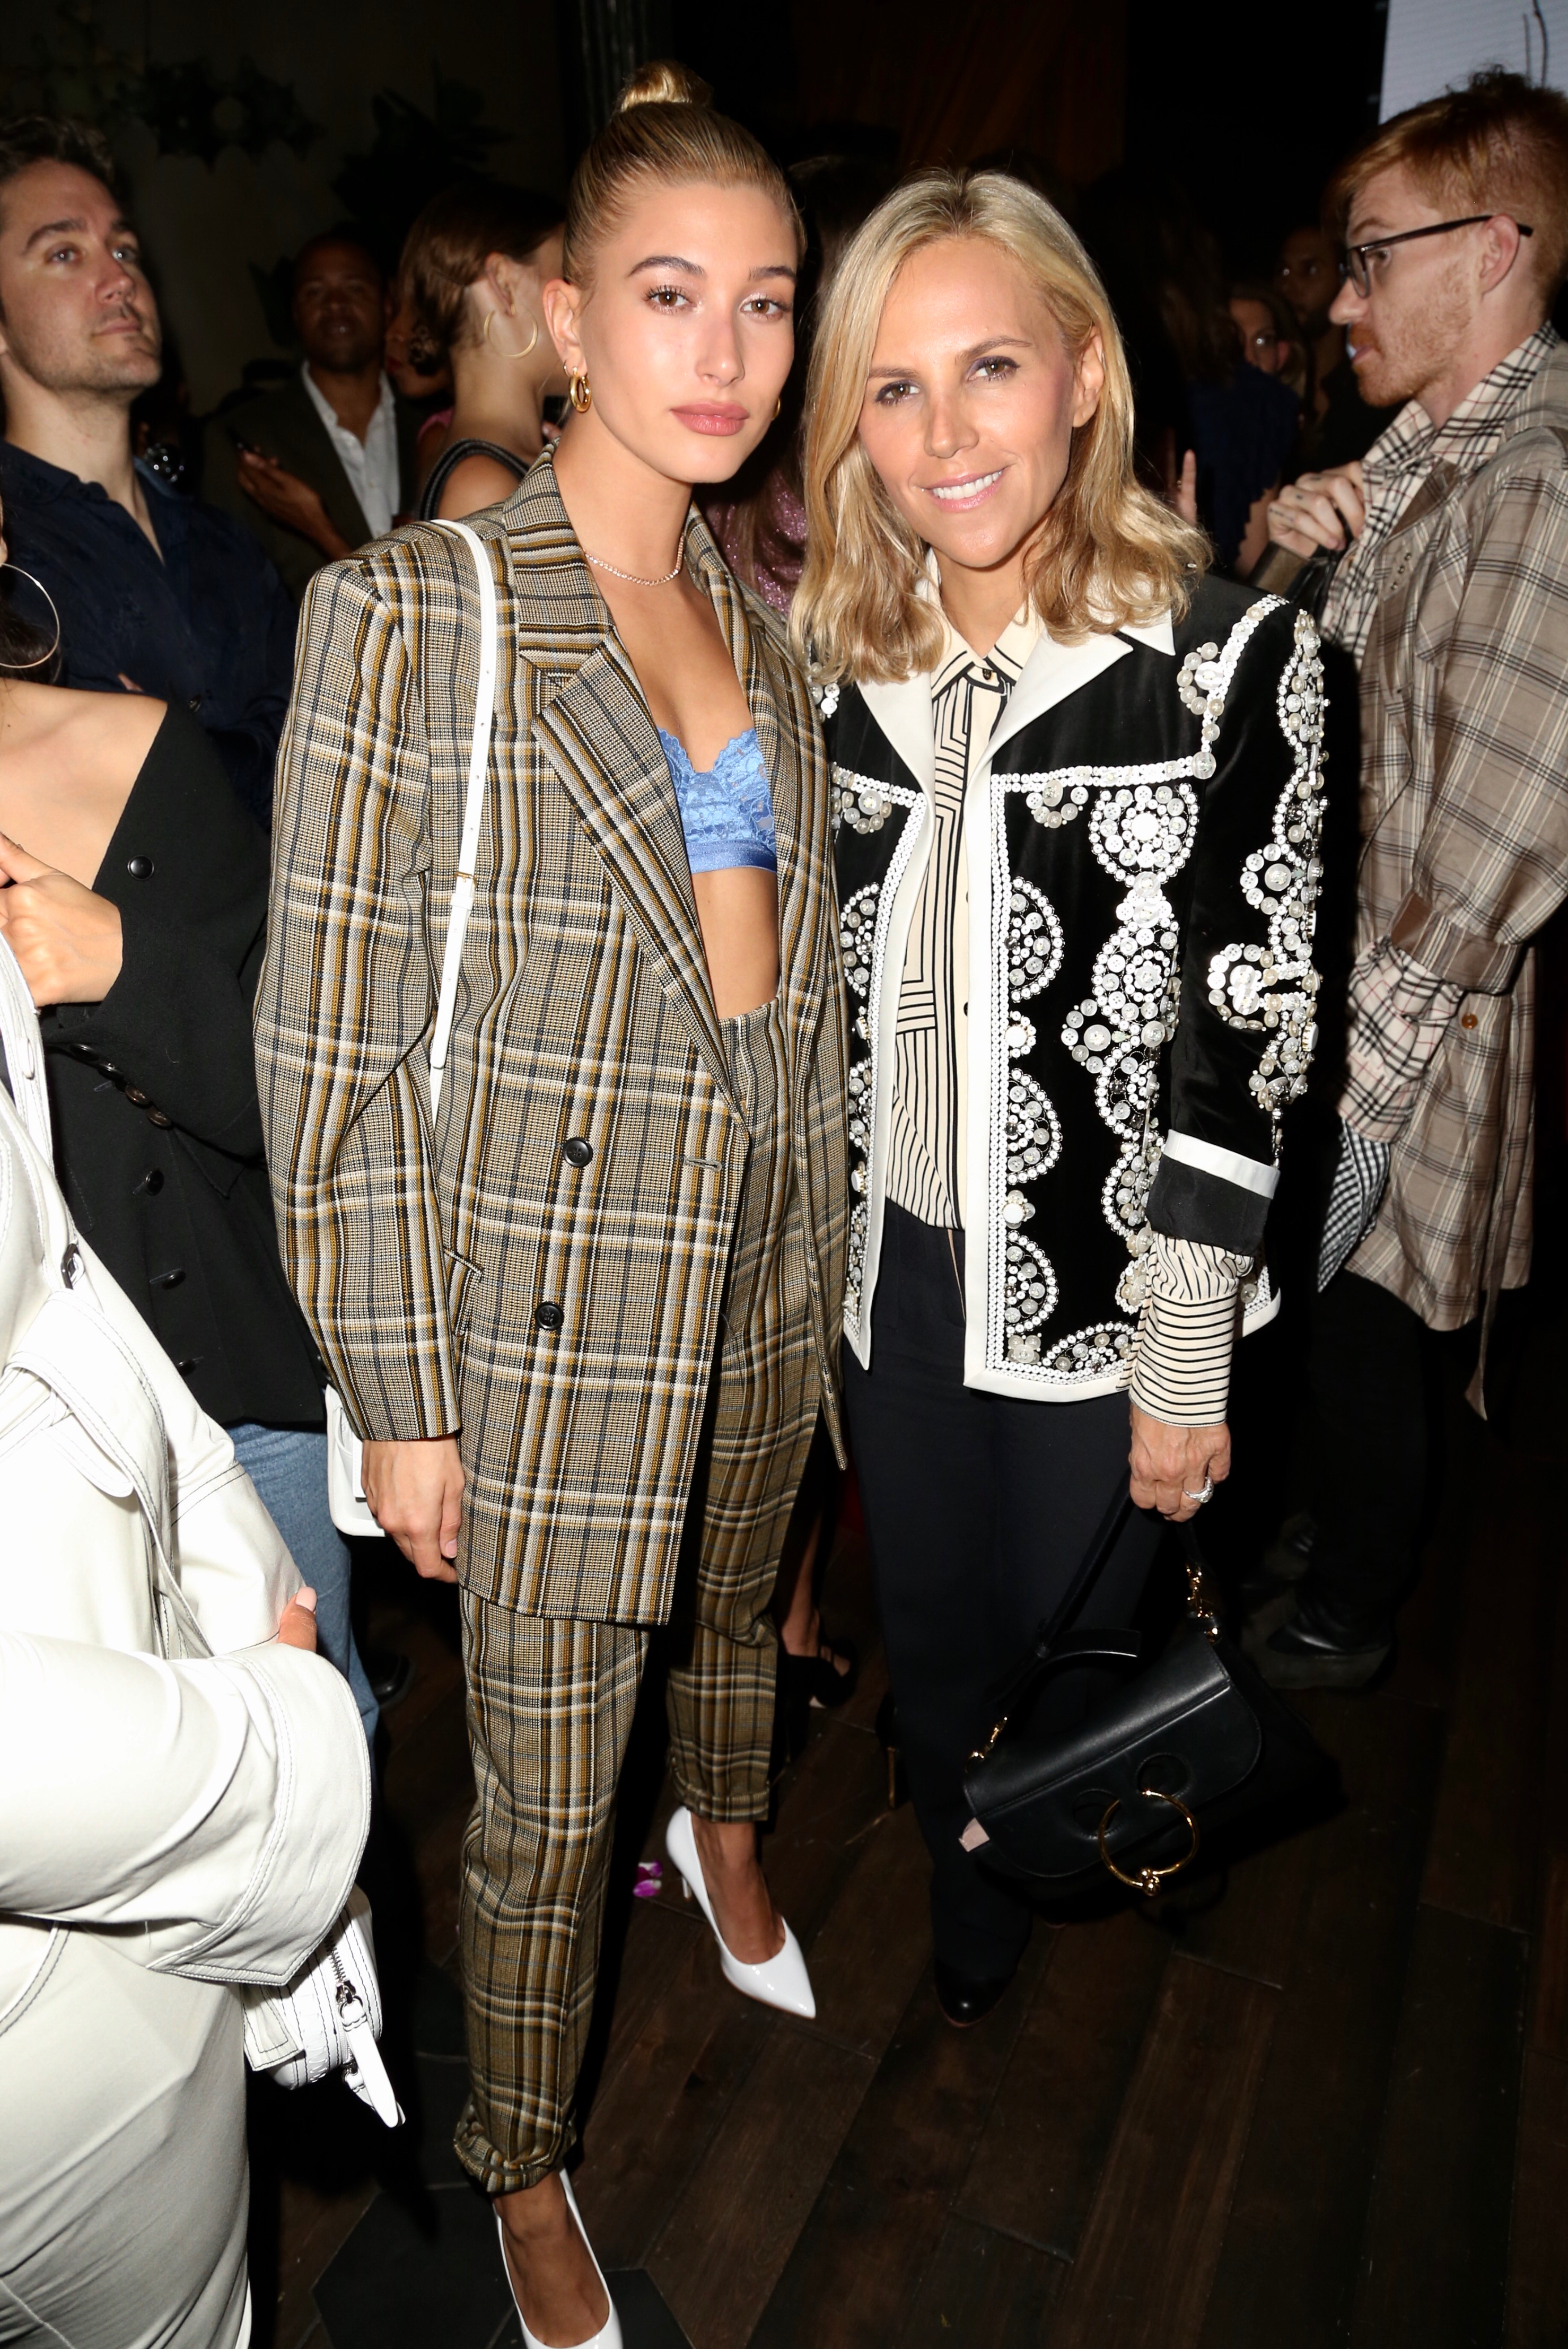 Hailey Baldwin, Tory Burch